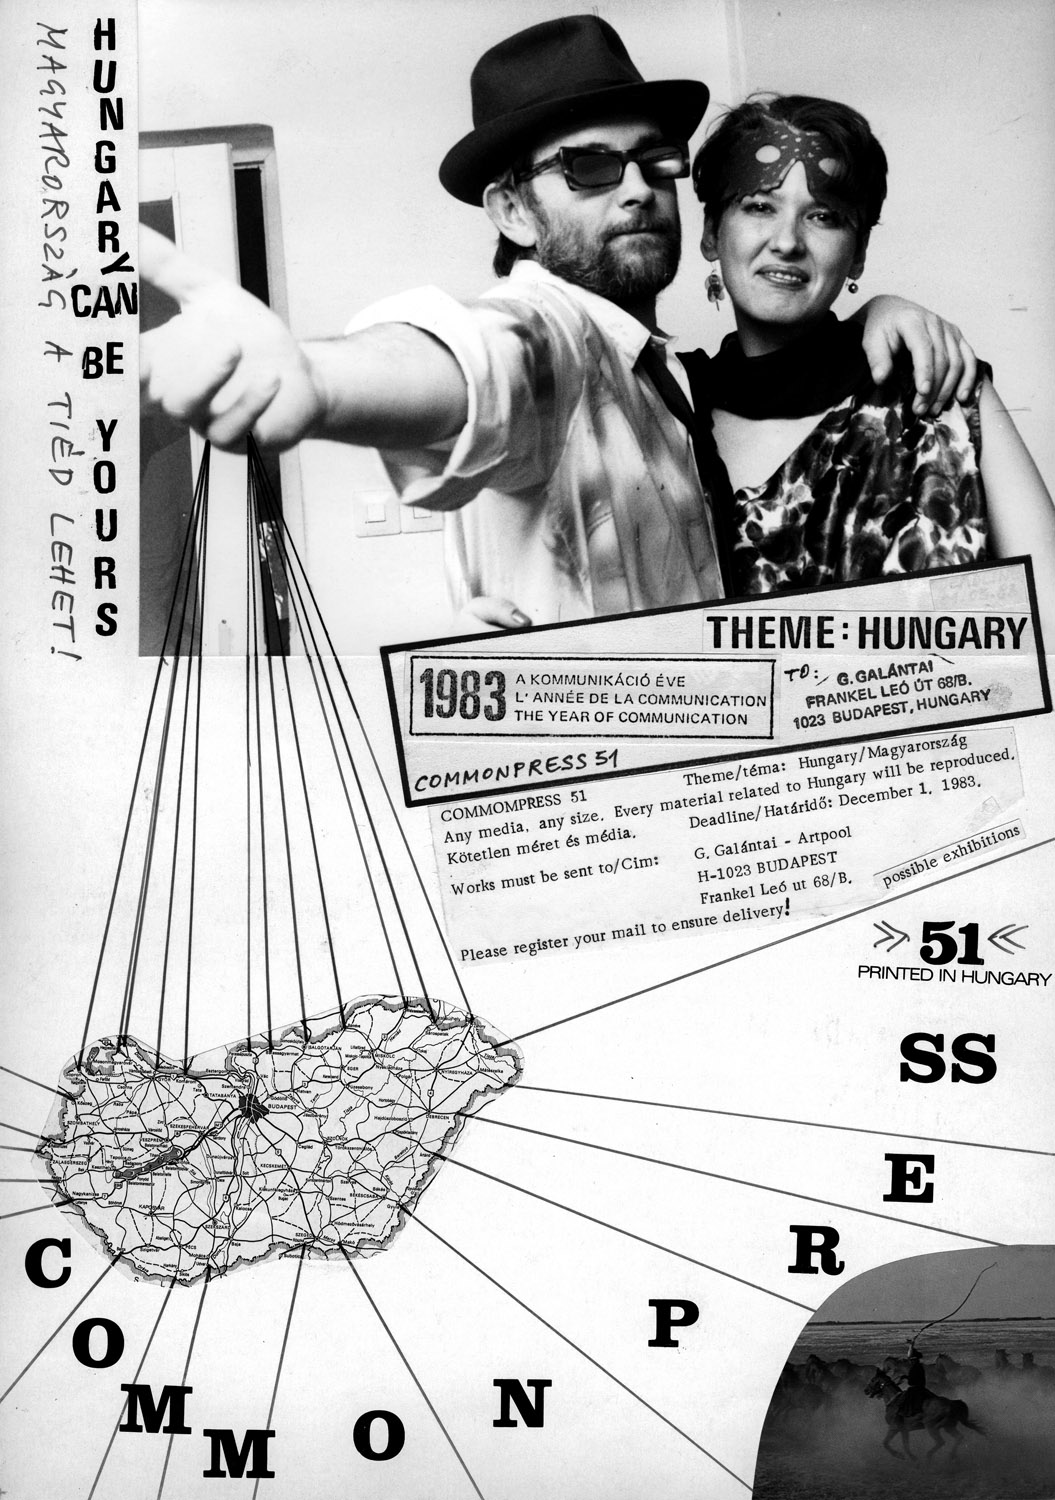 Invitation for Commonpress 51 'Hungary Can Be Yours', 1983. On the photo by István Jávor: György Galántai and Júlia Klaniczay